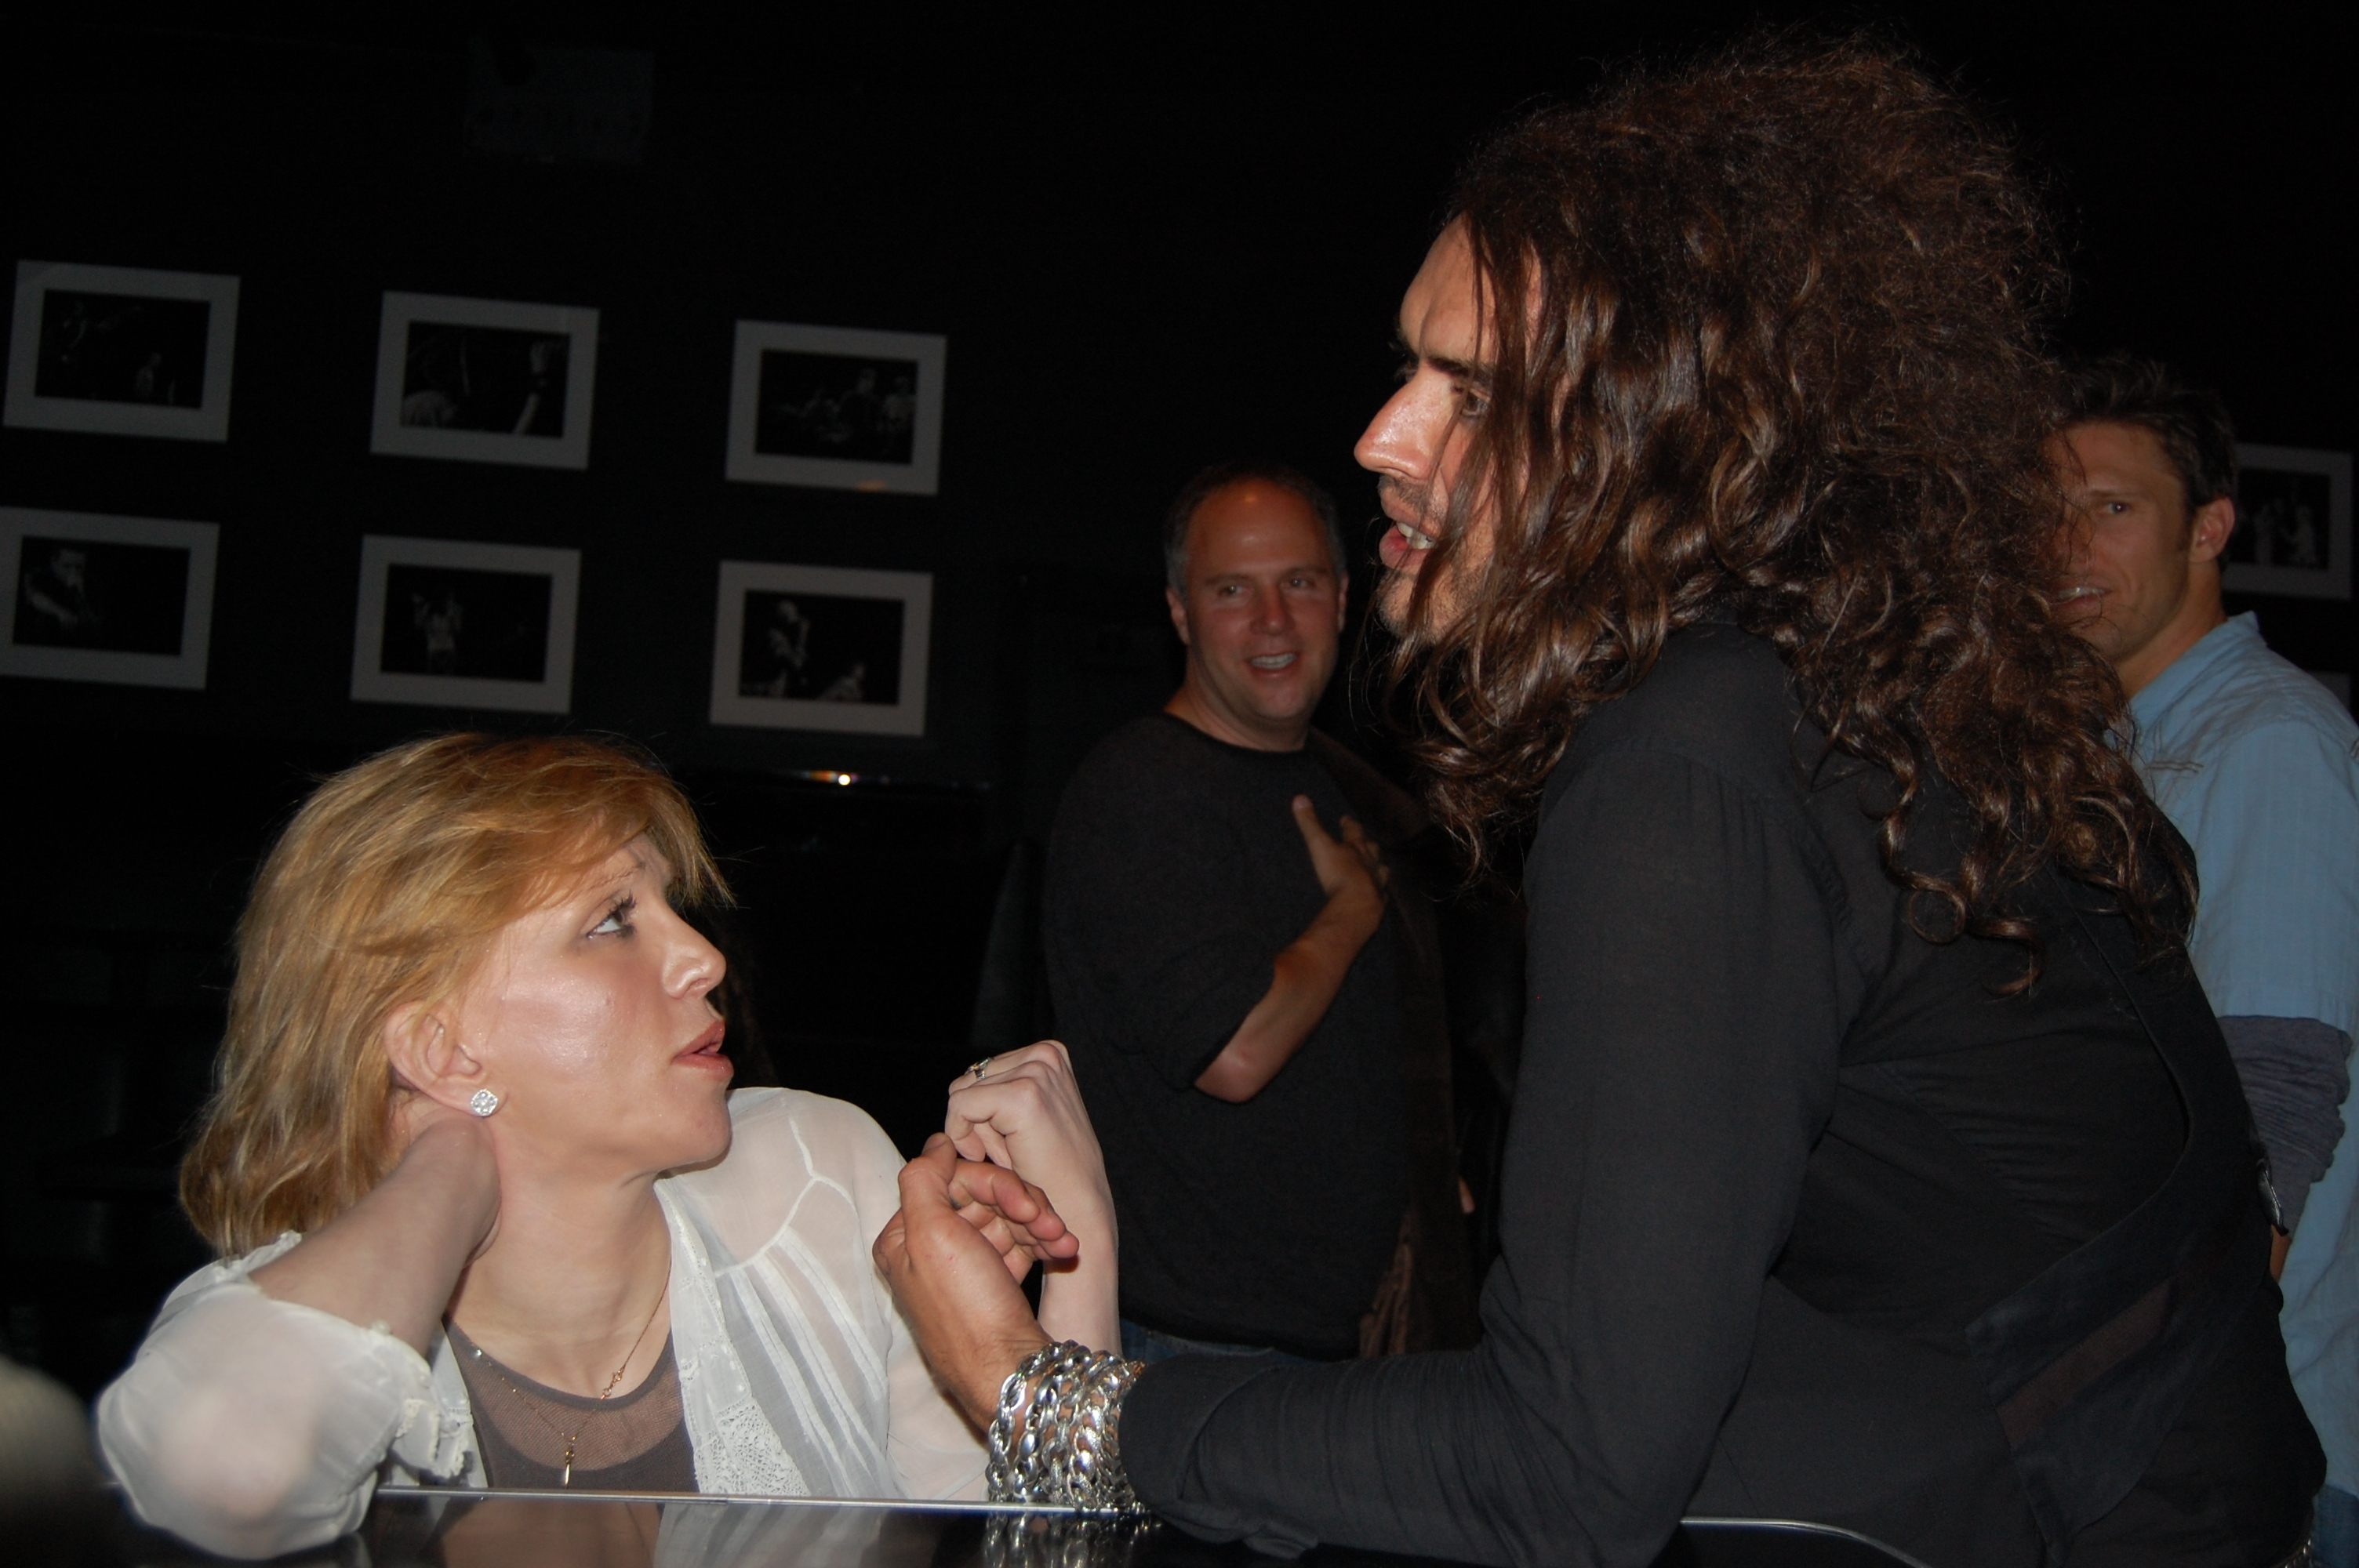 russell brand and relationship